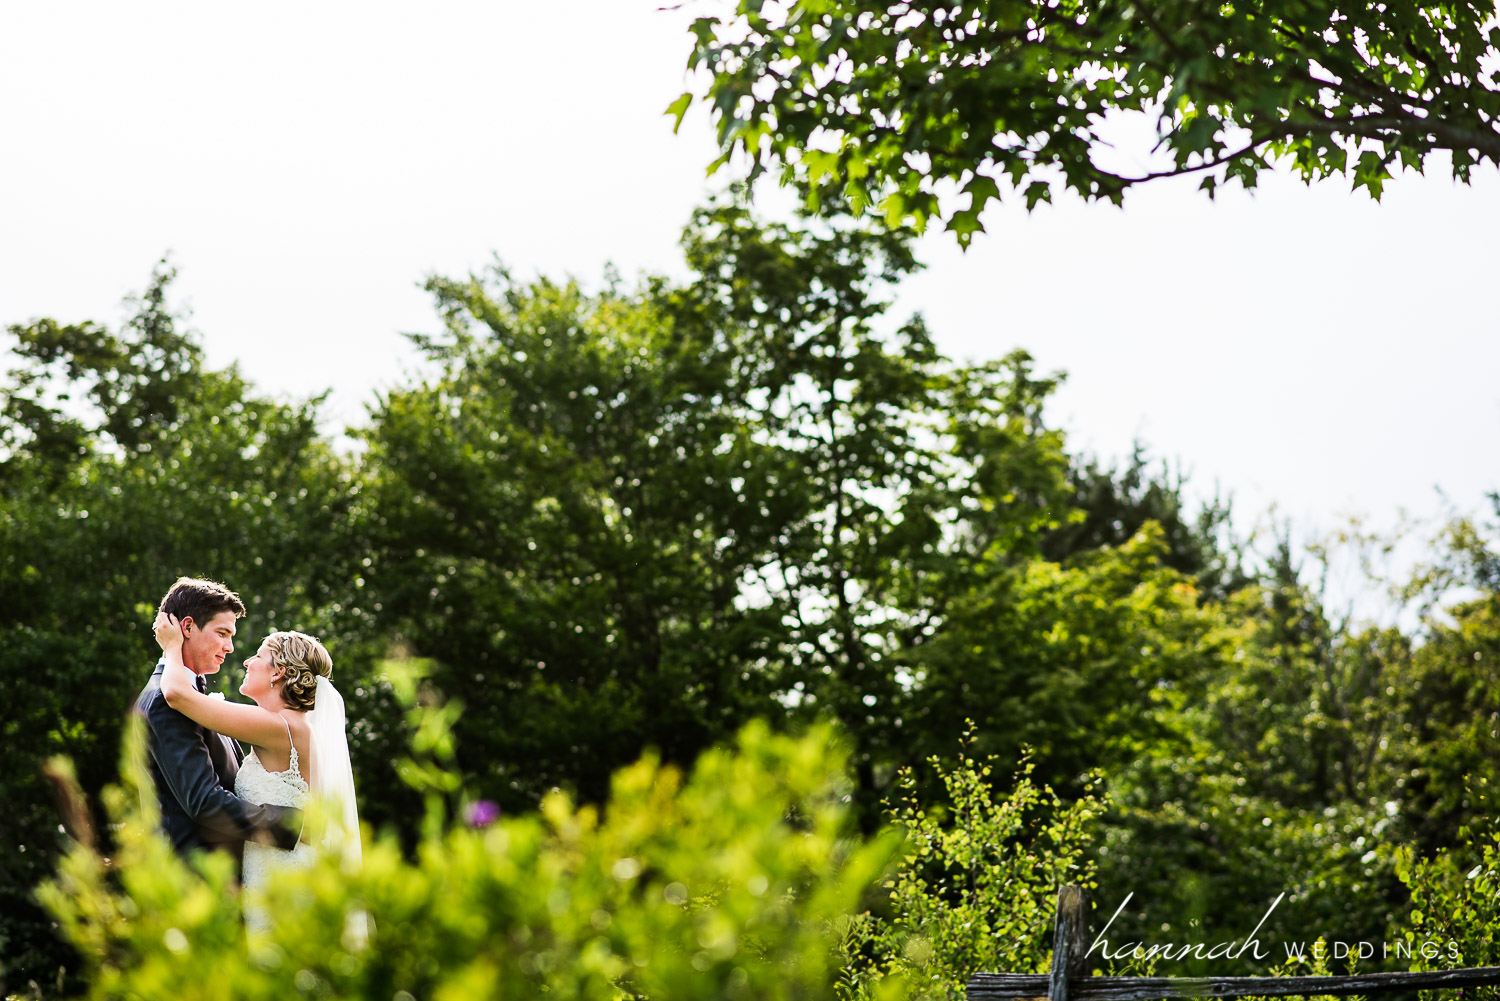 Meghan-Craig Vermont Wedding-017